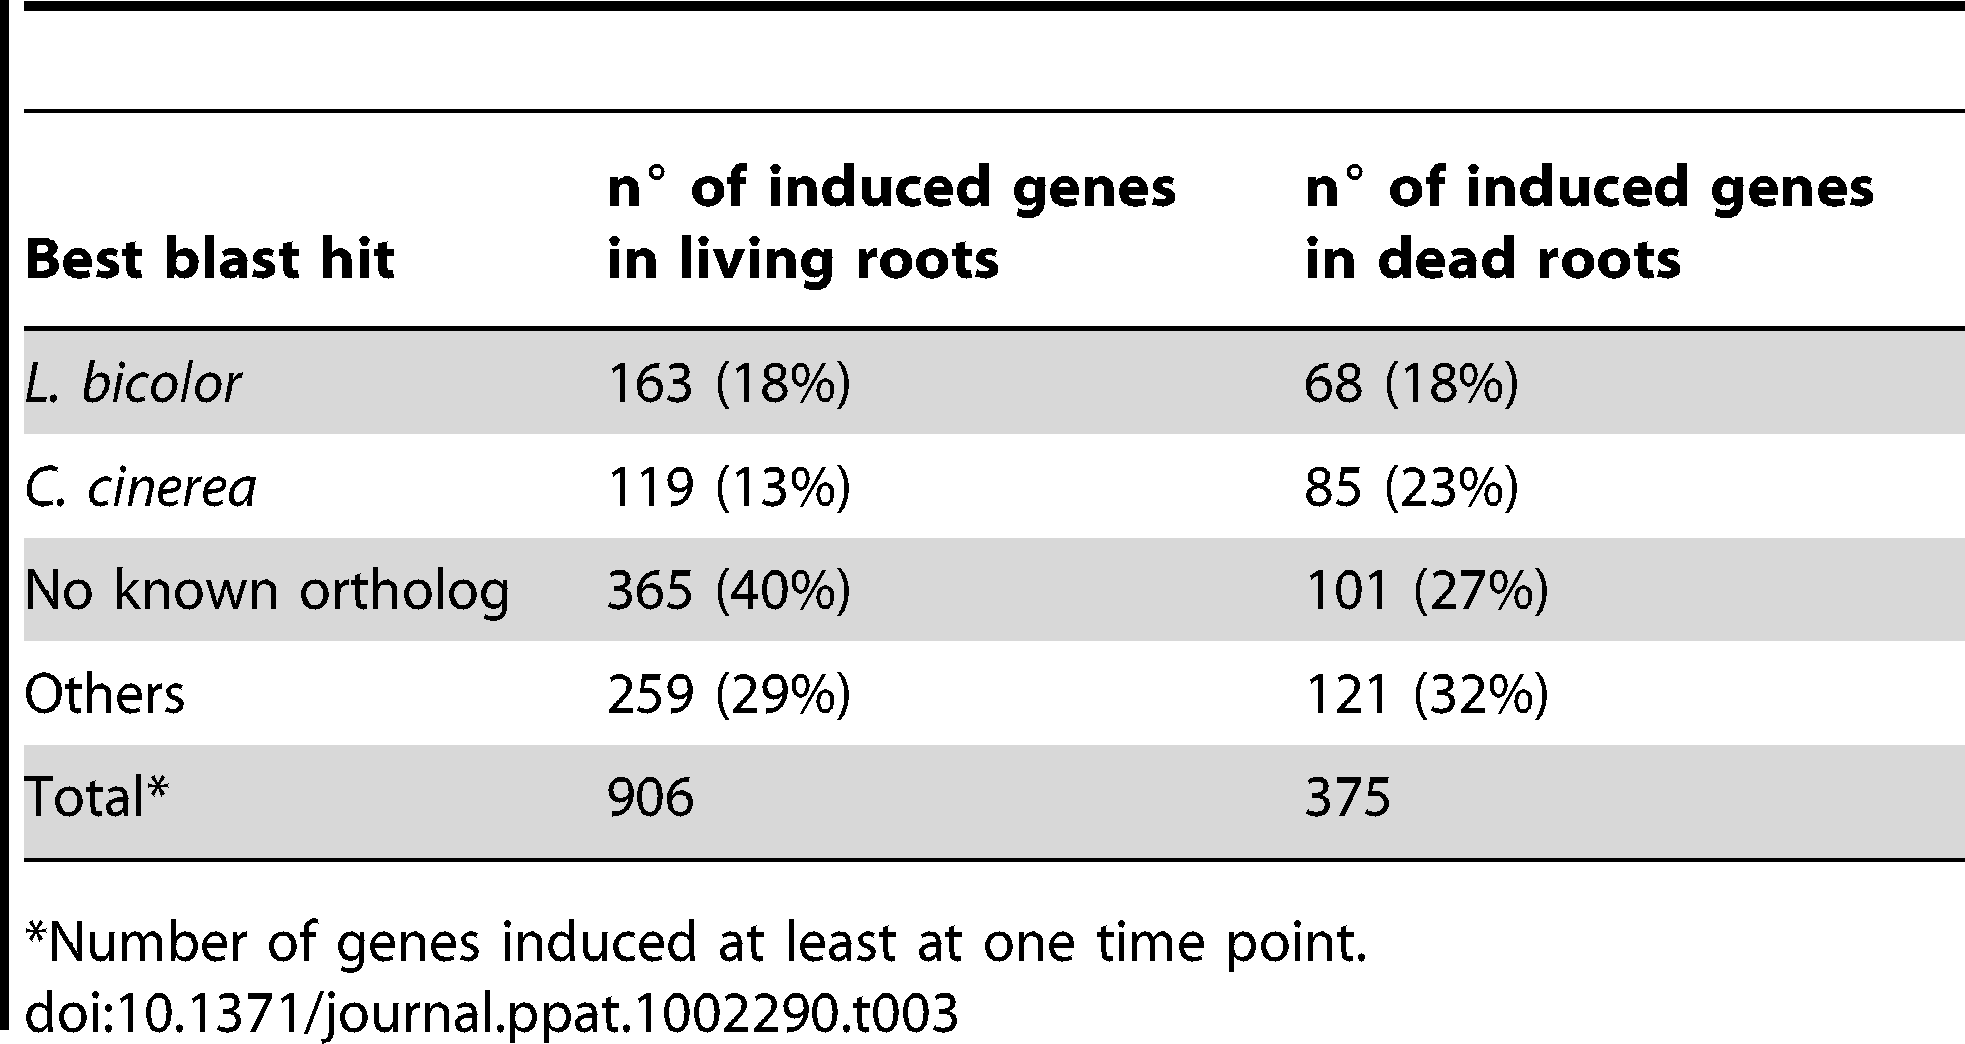 Best blast hits for the induced genes during symbiosis or saprotrophism.